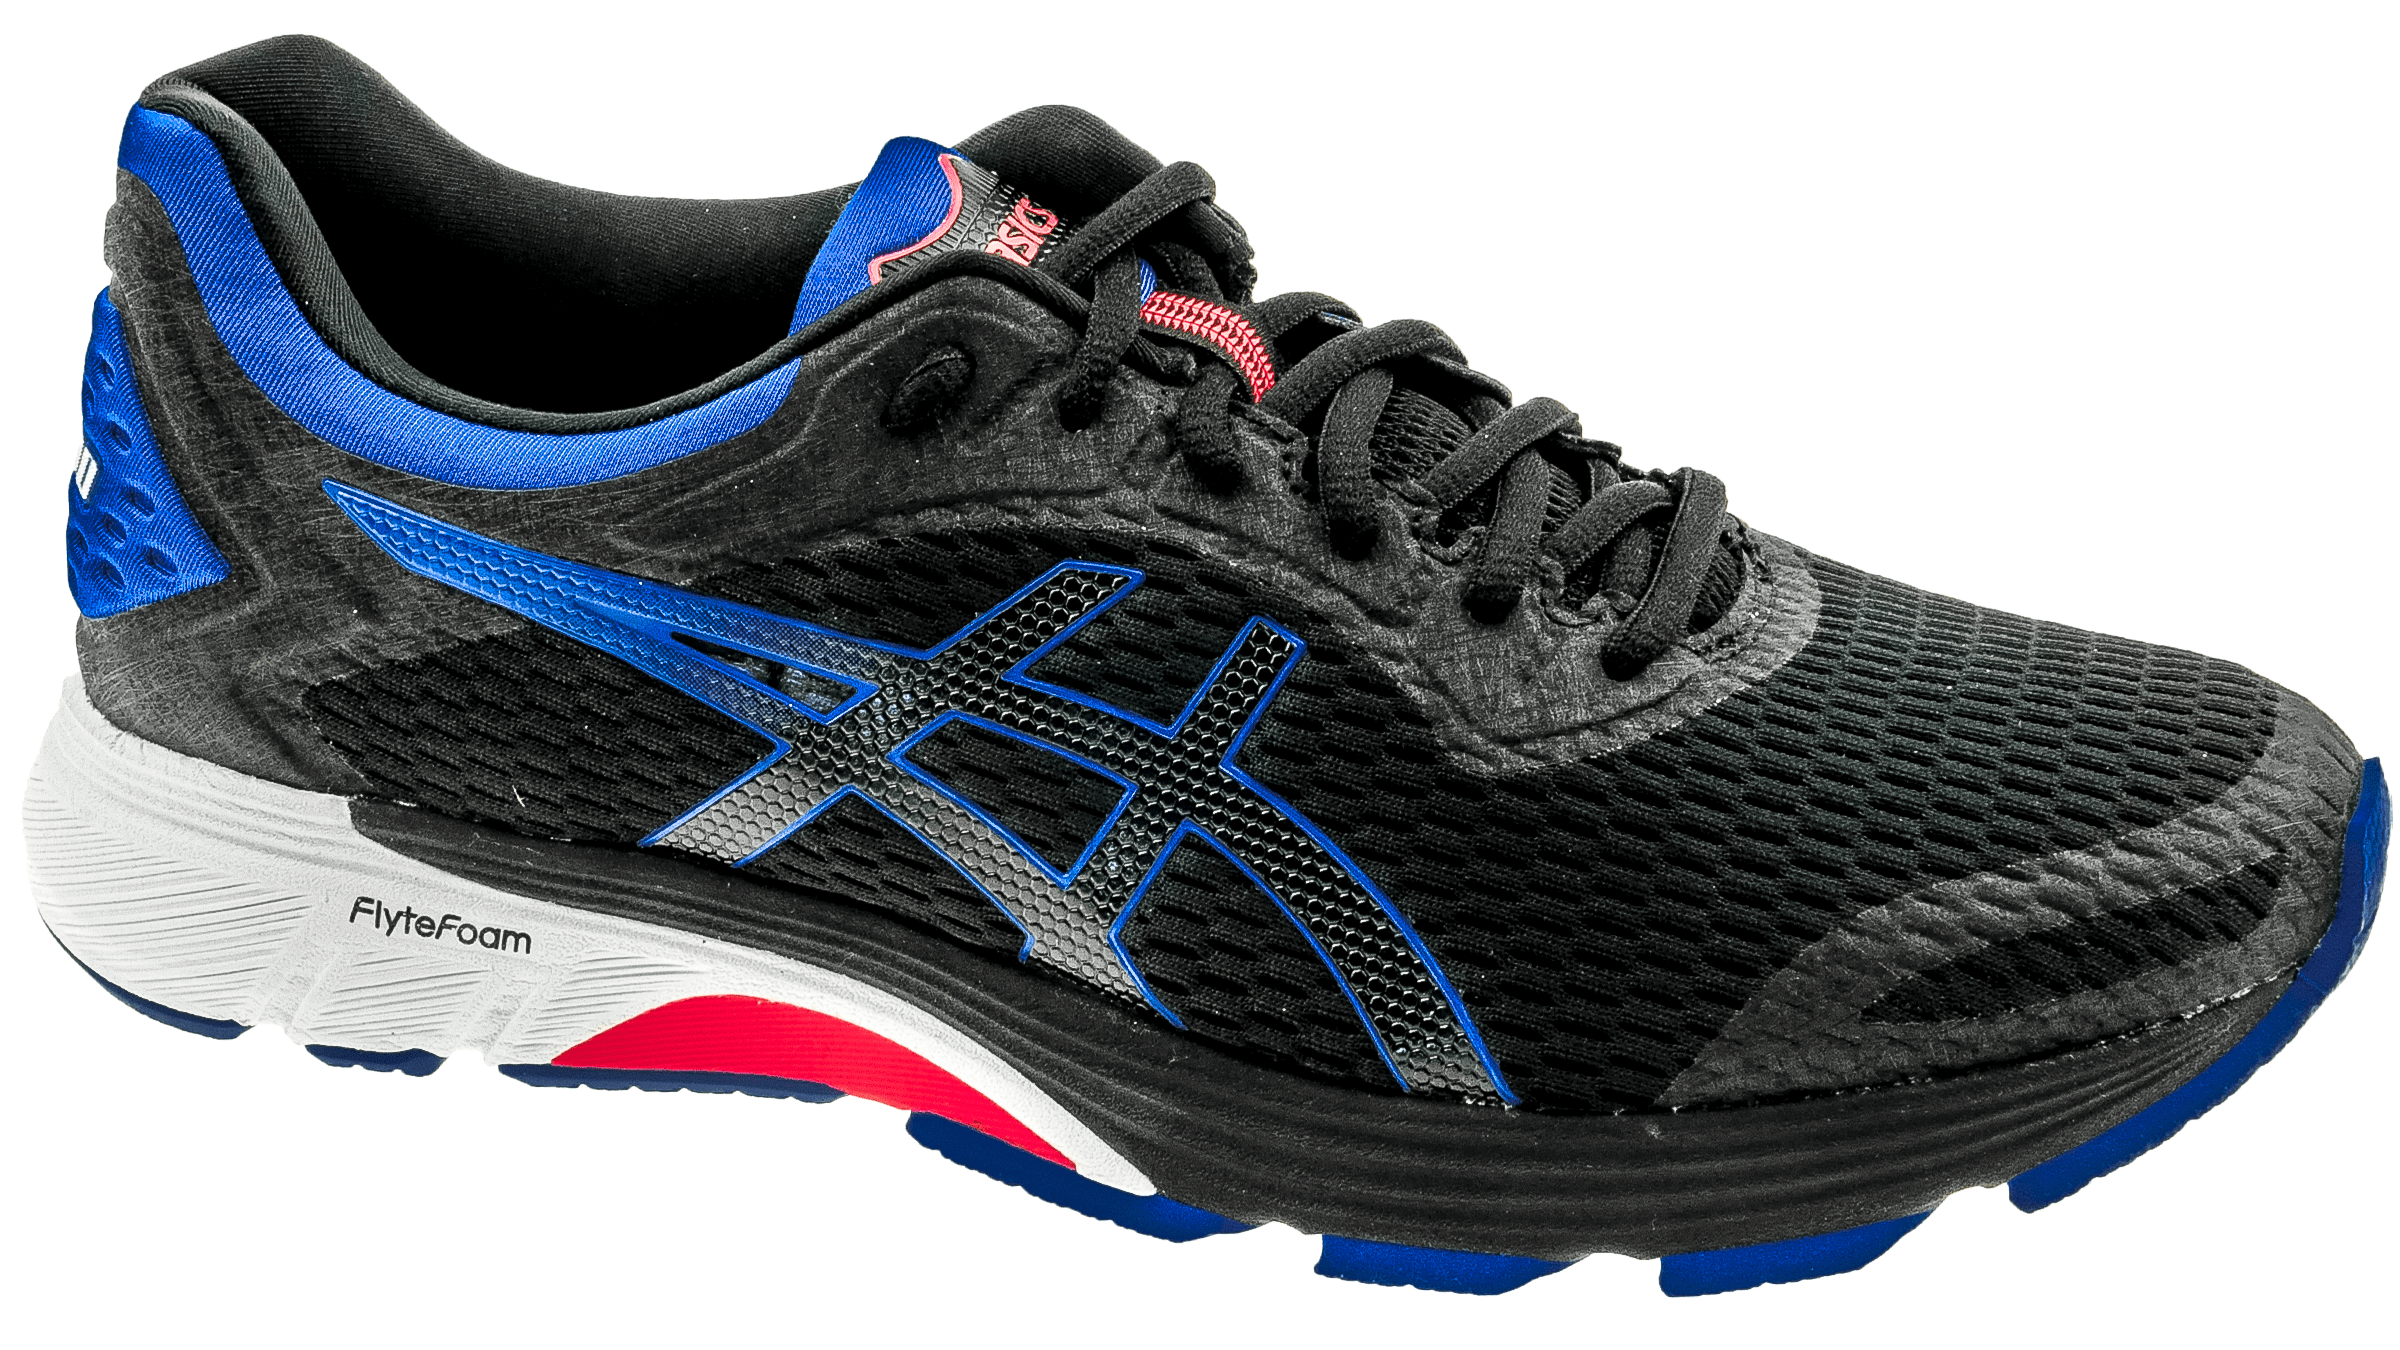 best asics walking shoes for overpronation height